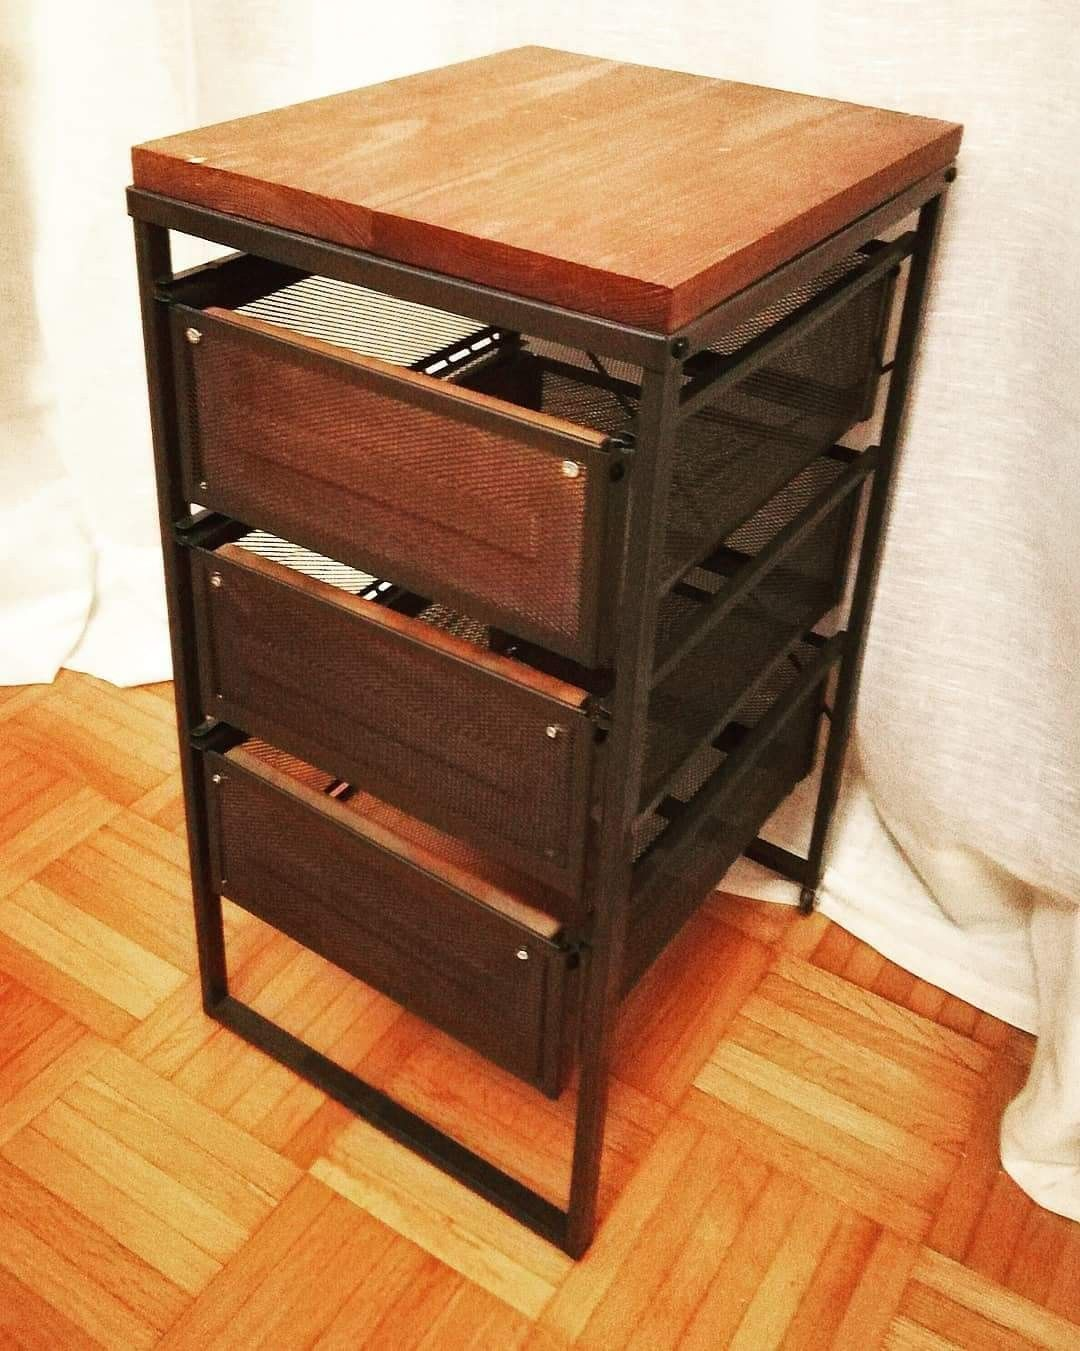 Ikea Lennart drawers revamped Industrial decor